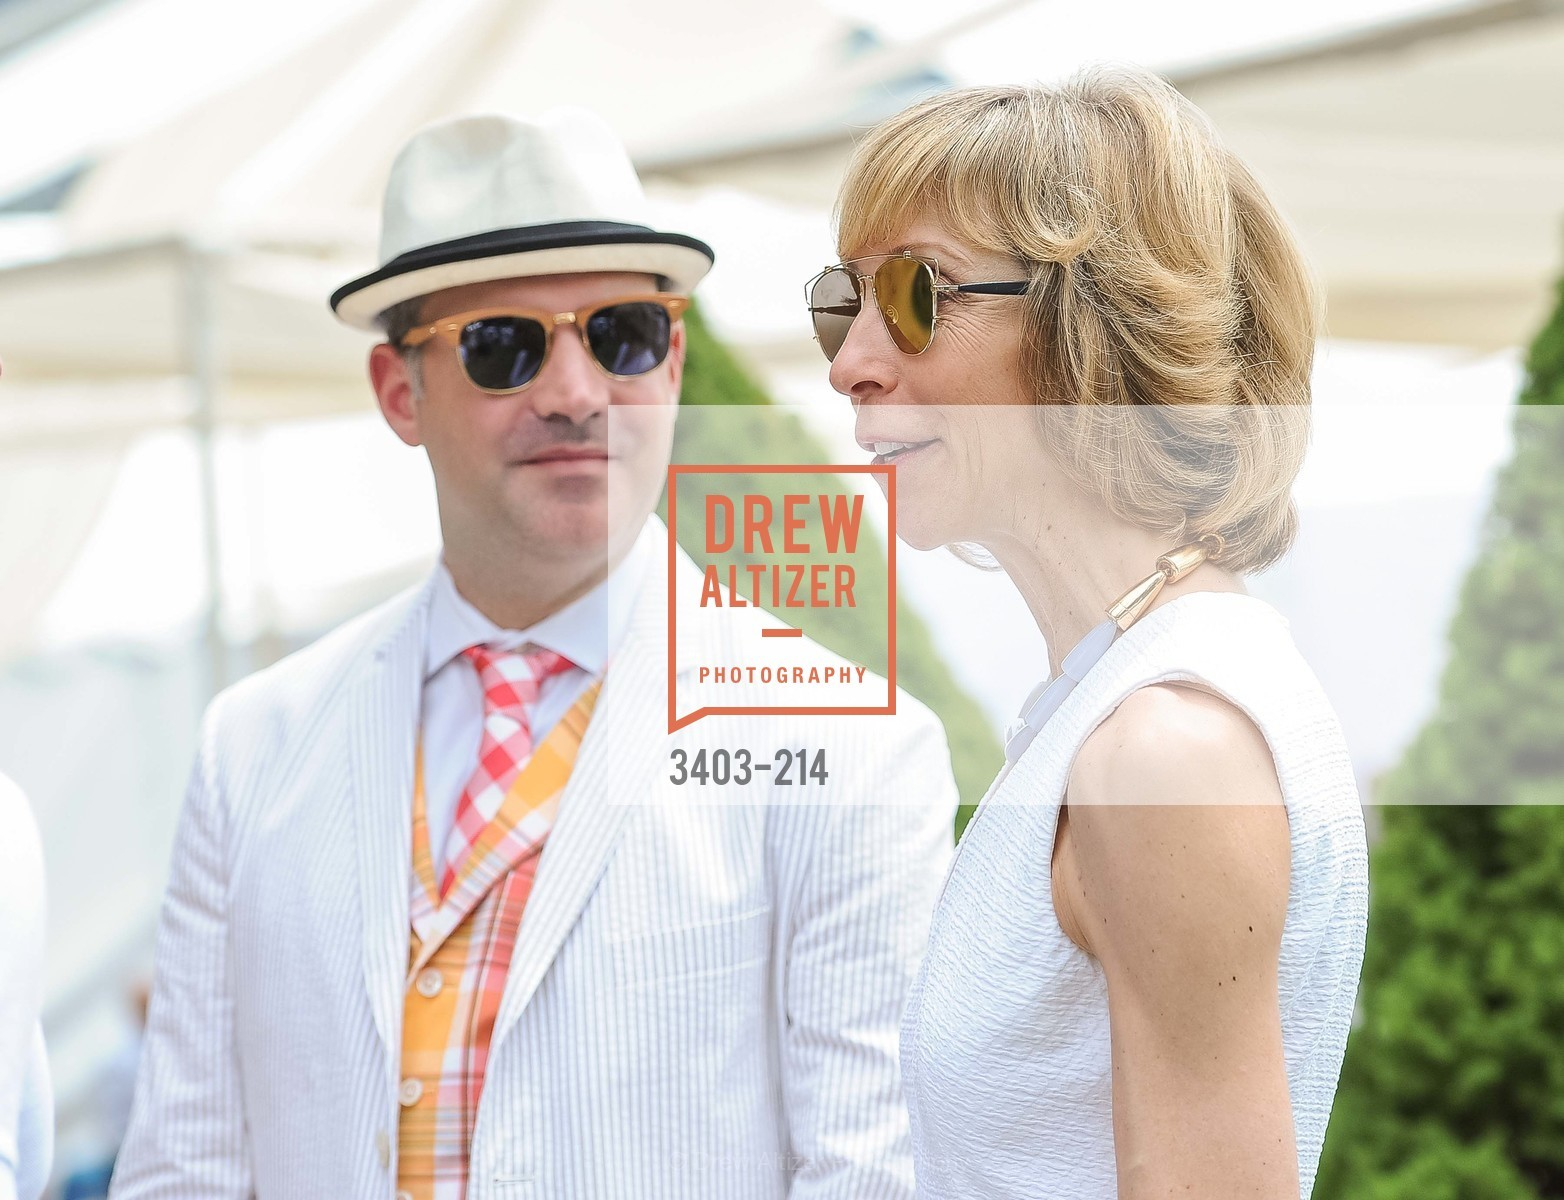 Robert Arnold-Kraft, Nancy Kukacka, Saks Fifth Avenue and The League to Save Lake Tahoe Present Fashion on the Lake, Private Residence, August 1st, 2015,Drew Altizer, Drew Altizer Photography, full-service event agency, private events, San Francisco photographer, photographer California